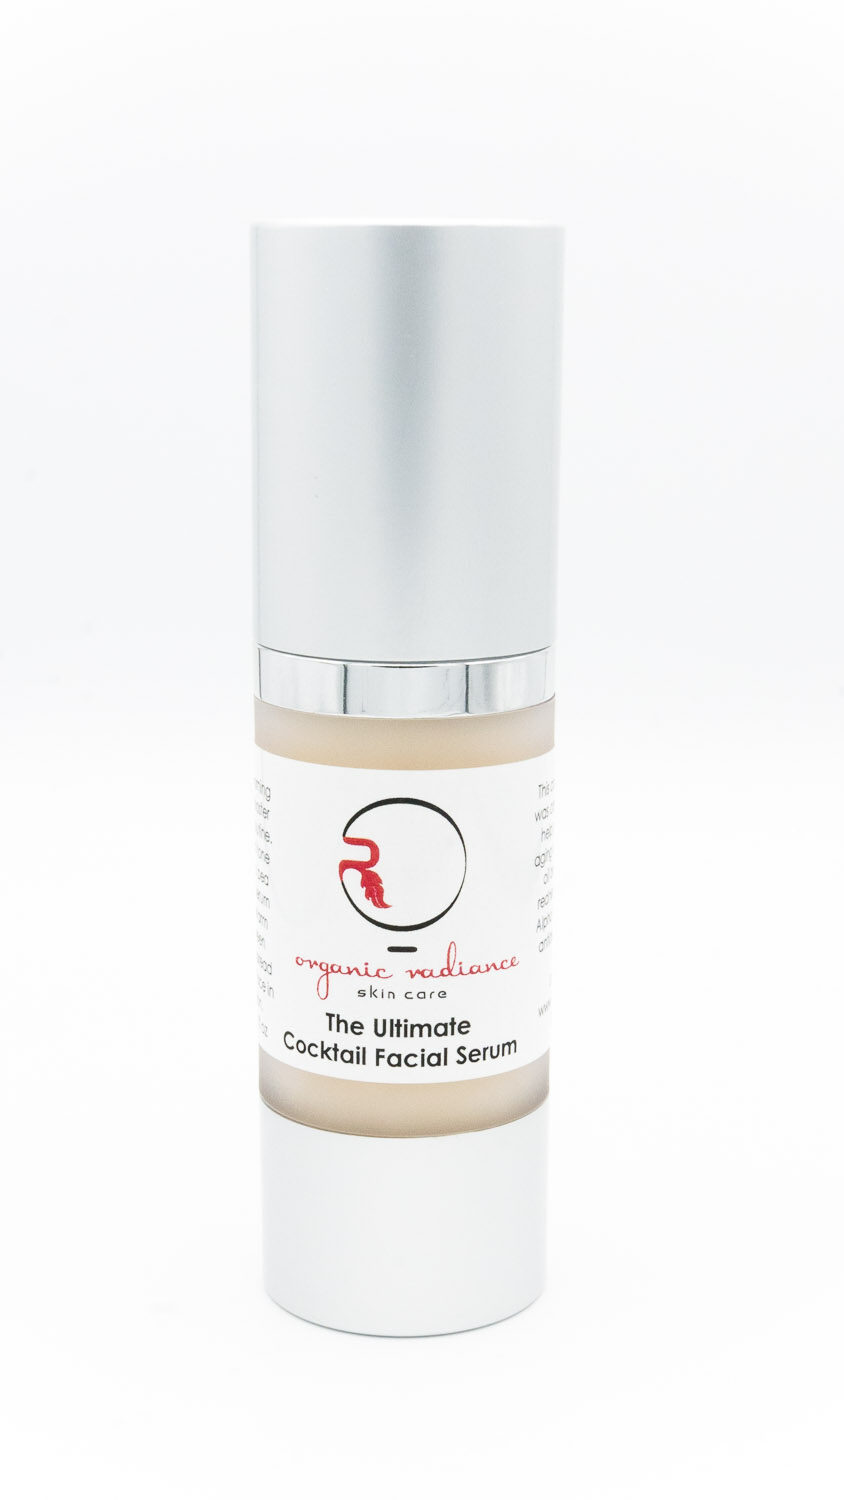 Ultimate-Cocktail-Facial-Serum_Organic-Radiance-Skincare